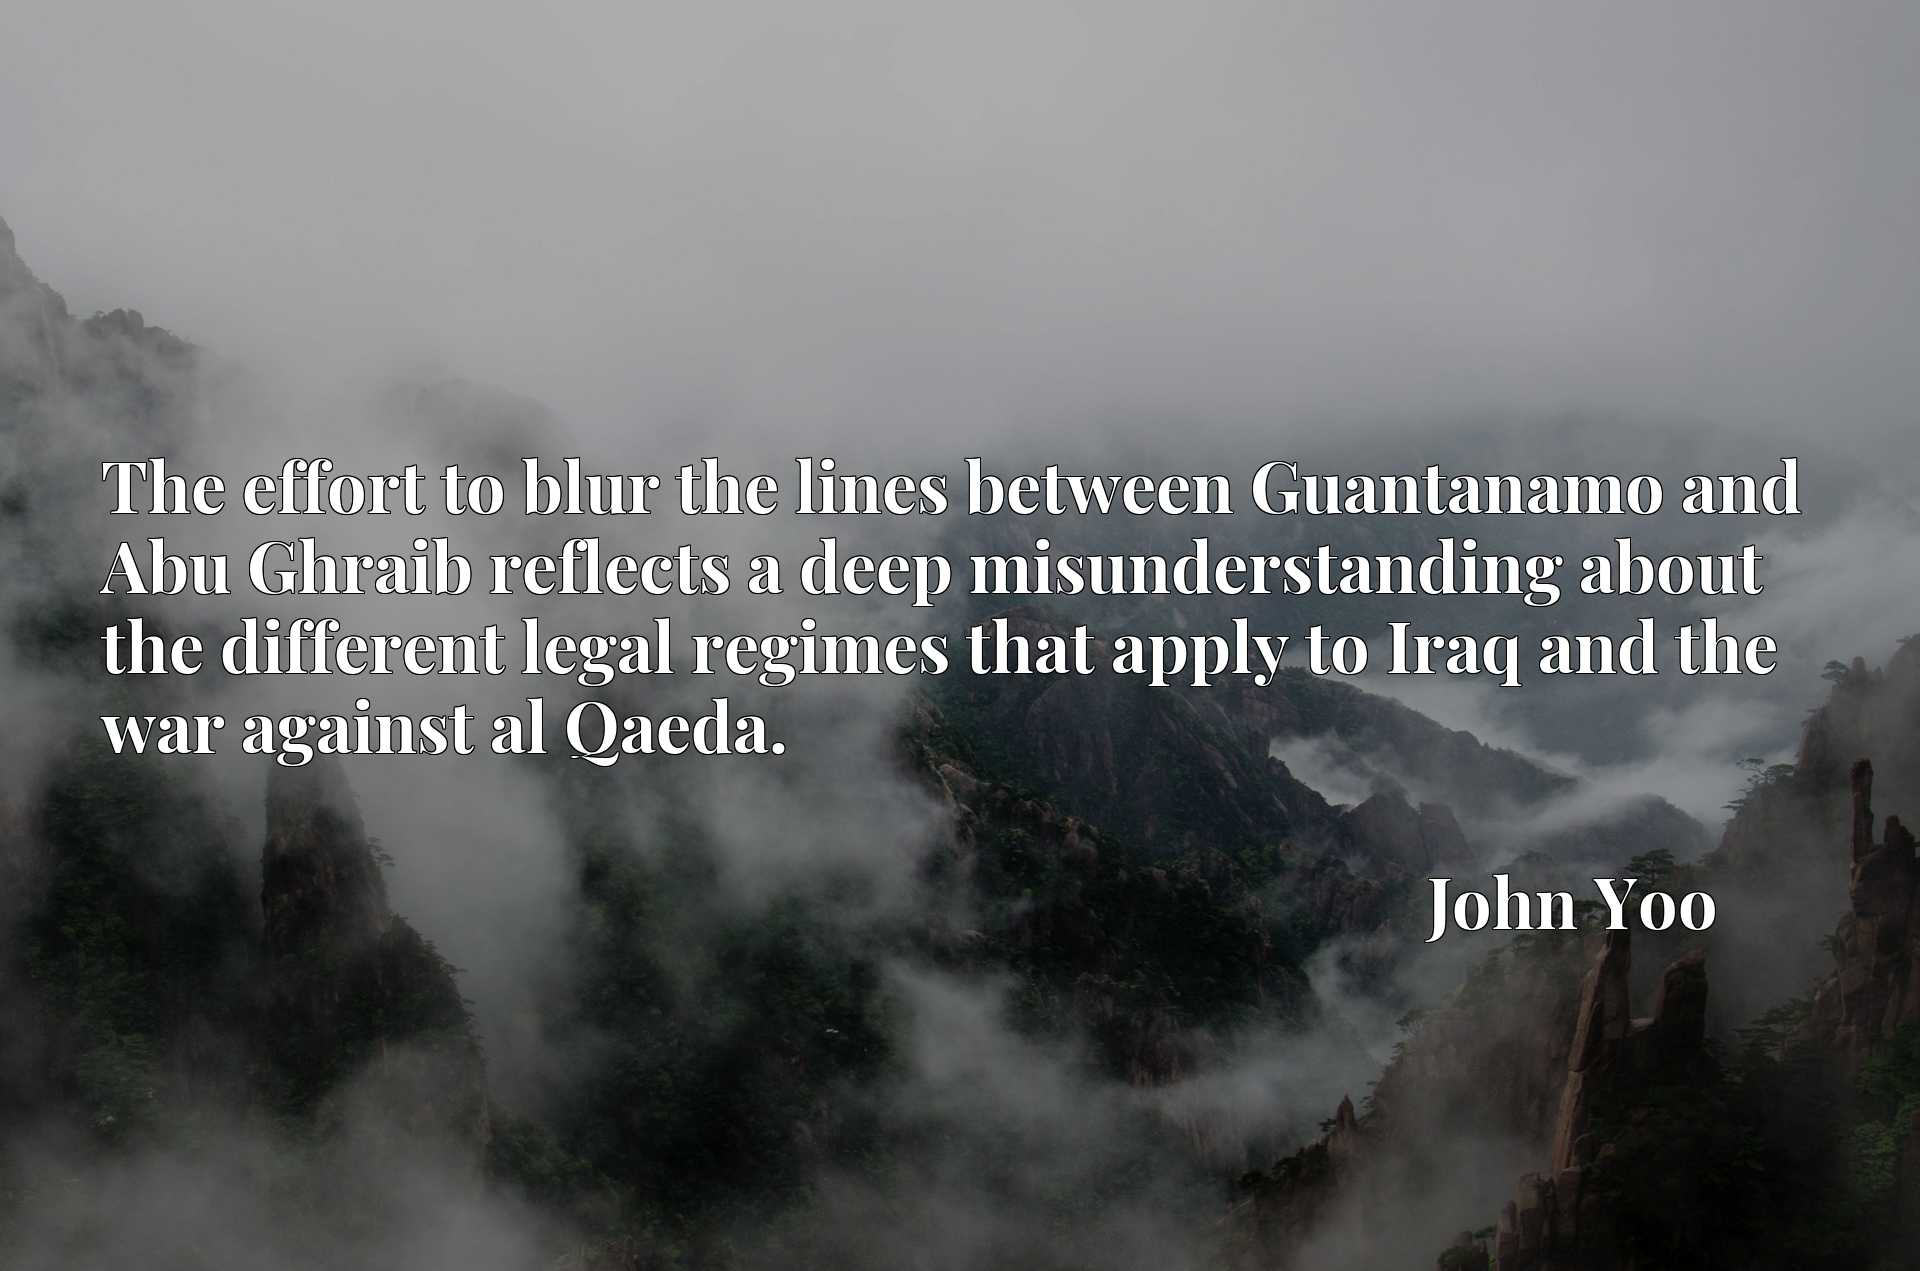 Quote Picture :The effort to blur the lines between Guantanamo and Abu Ghraib reflects a deep misunderstanding about the different legal regimes that apply to Iraq and the war against al Qaeda.